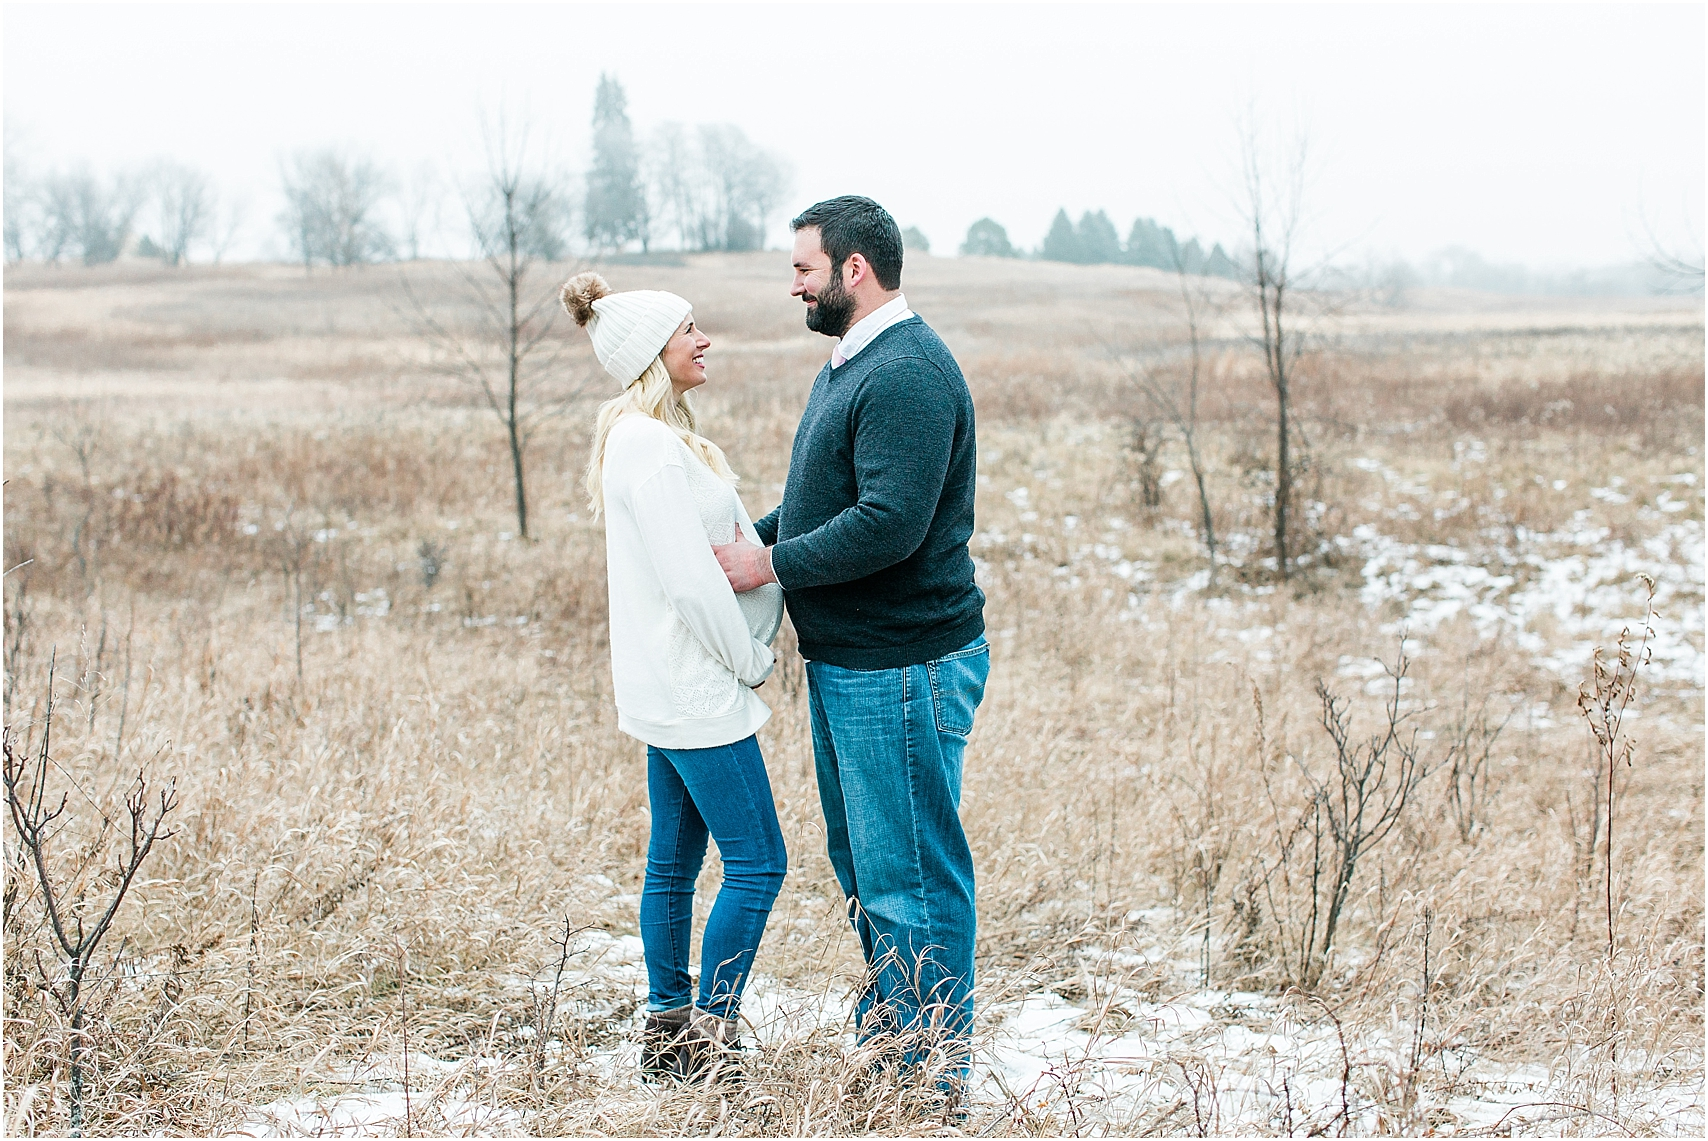 Minnesota winter maternity session Lake Ann Park Chanhassen photographed by Mallory Kiesow, Minnesota maternity photographer_015.jpg